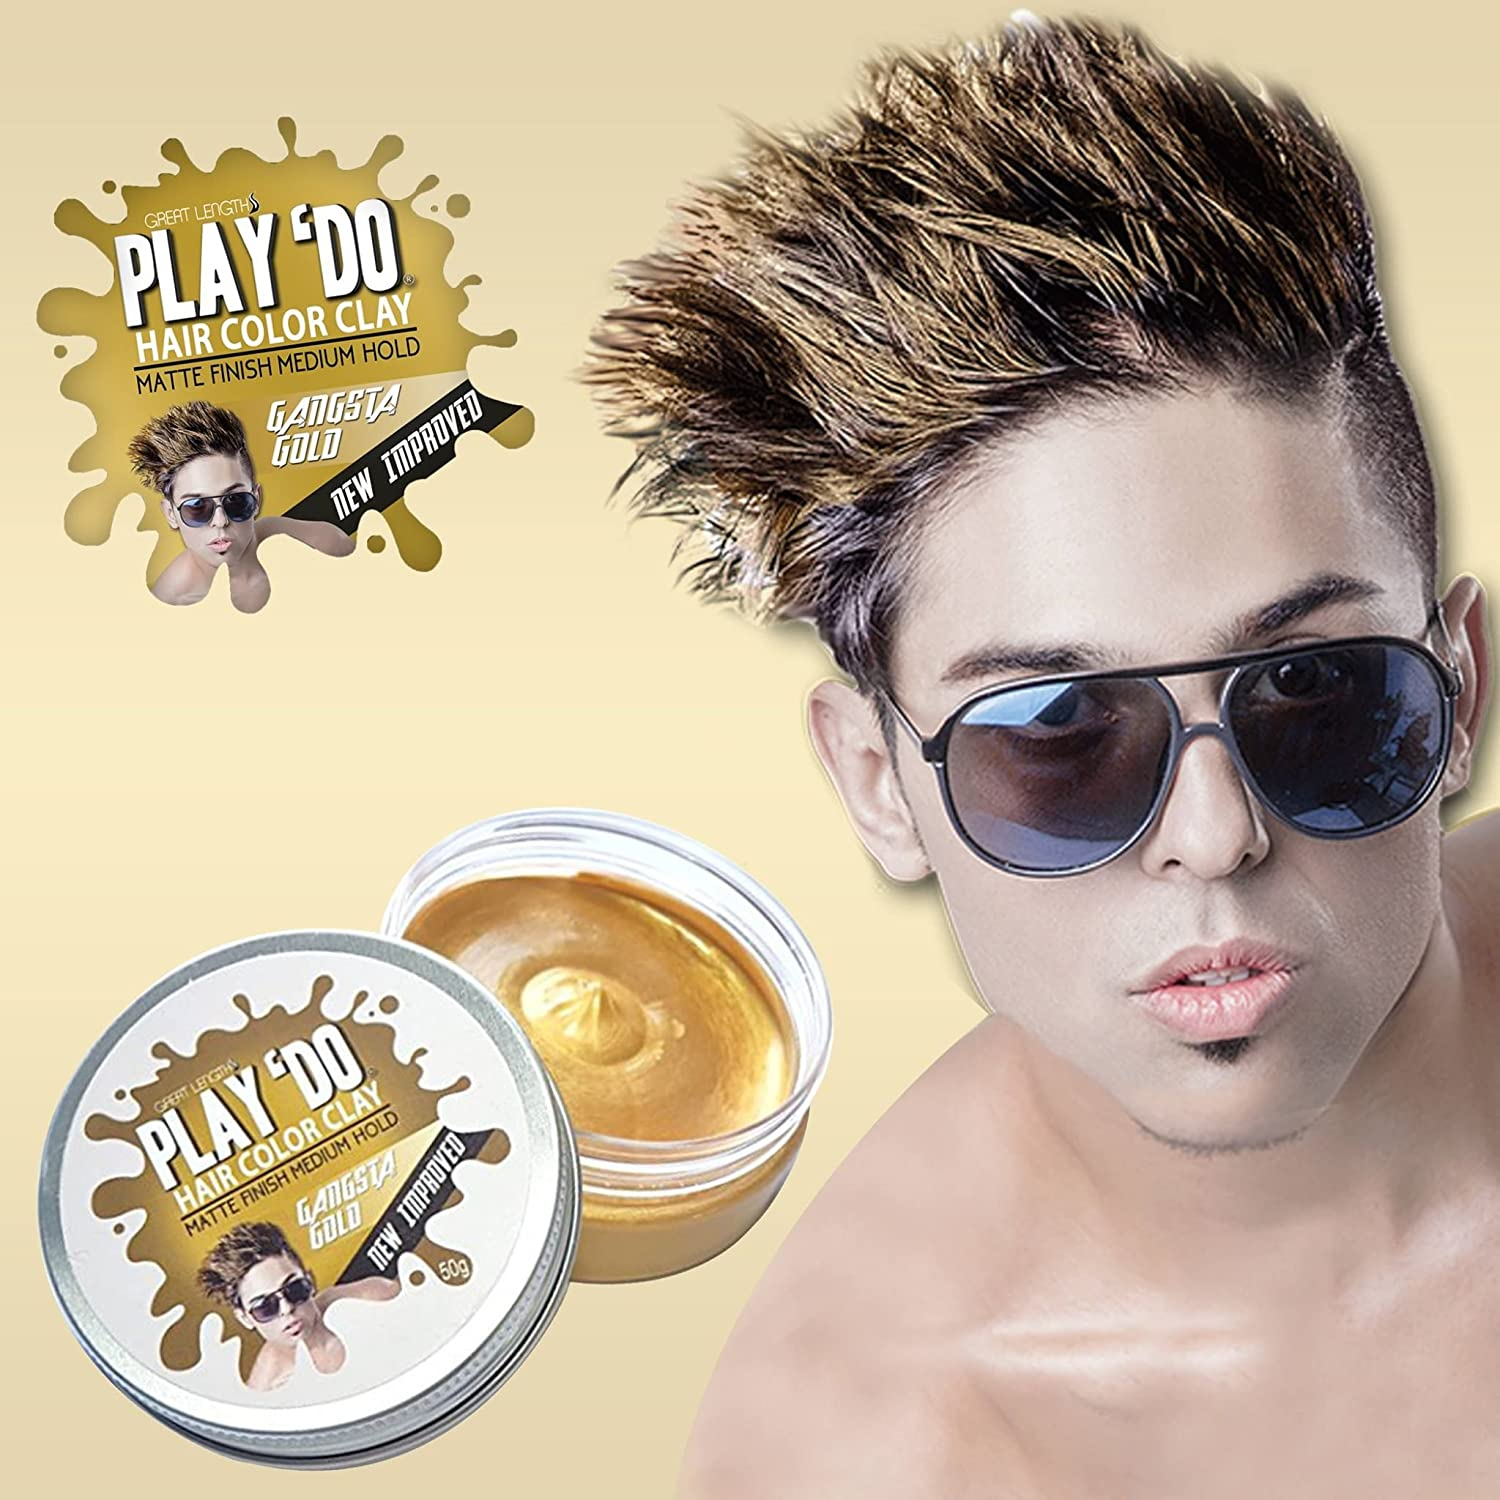 Play 'Do Temporary Hair Color, Hair Wax, Hair Clay, Mens Grooming, Gold hair dye(1.8 ounces) China